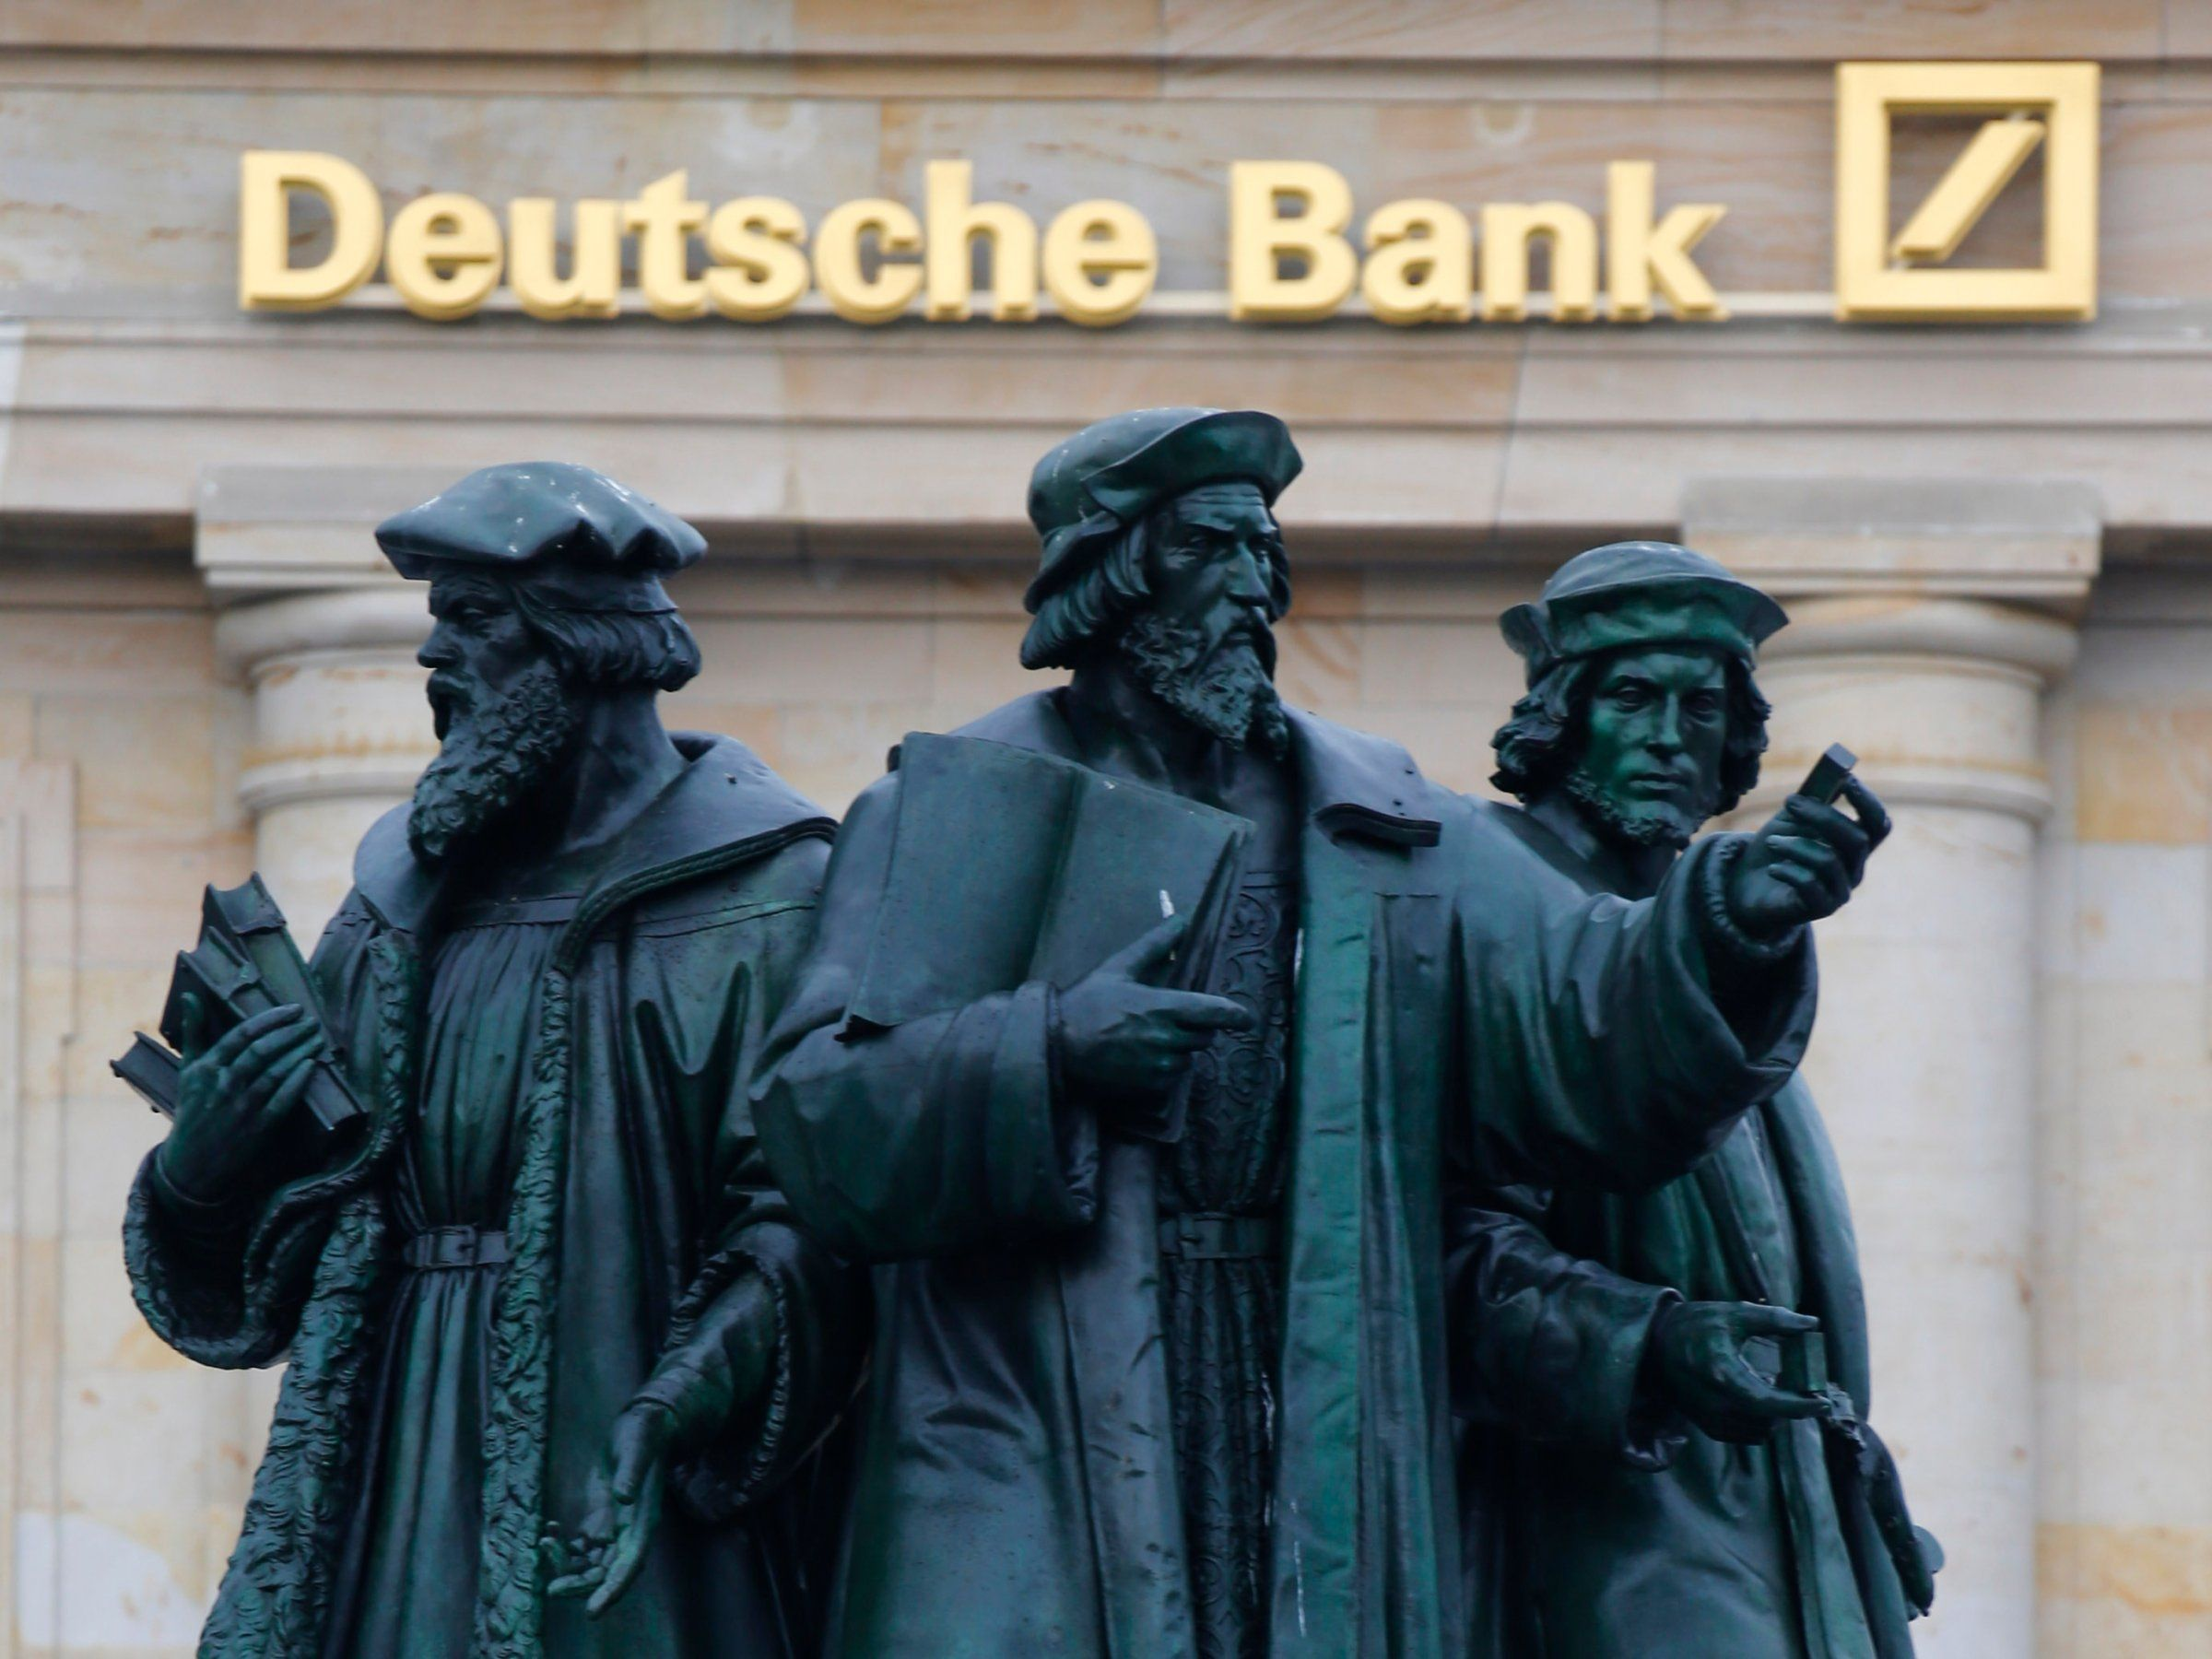 Deutsche Bank Has A New Us Chief Russian Money Money Laundering Investment Banking